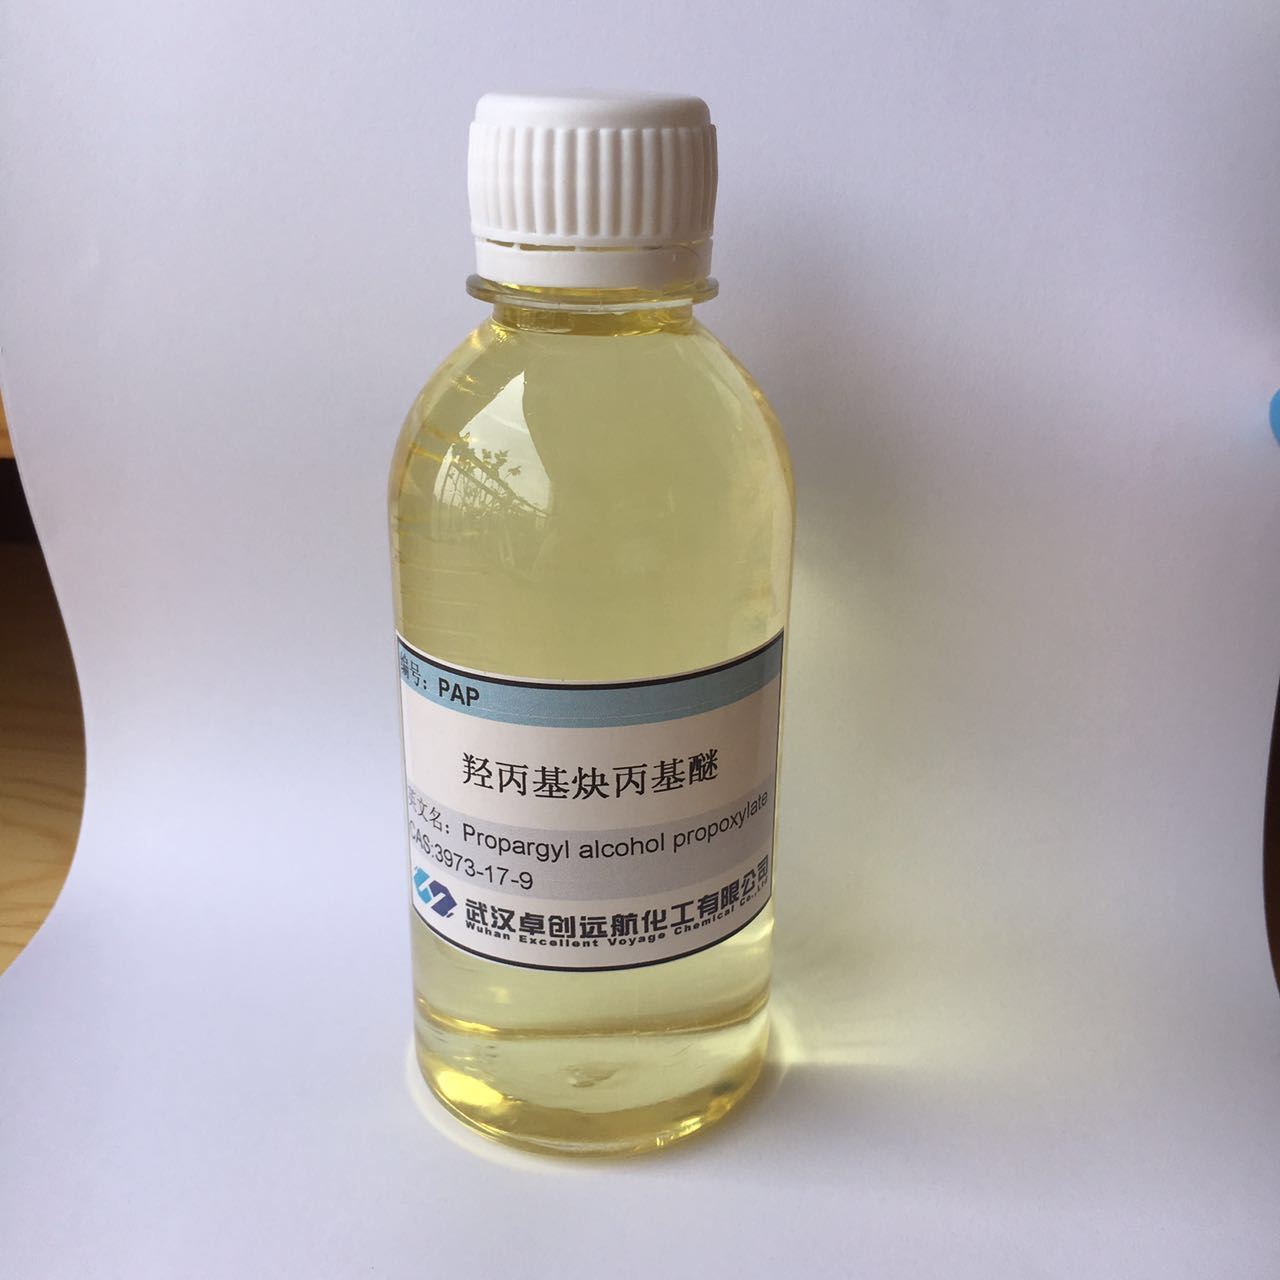 Propargyl alcohol propoxylate